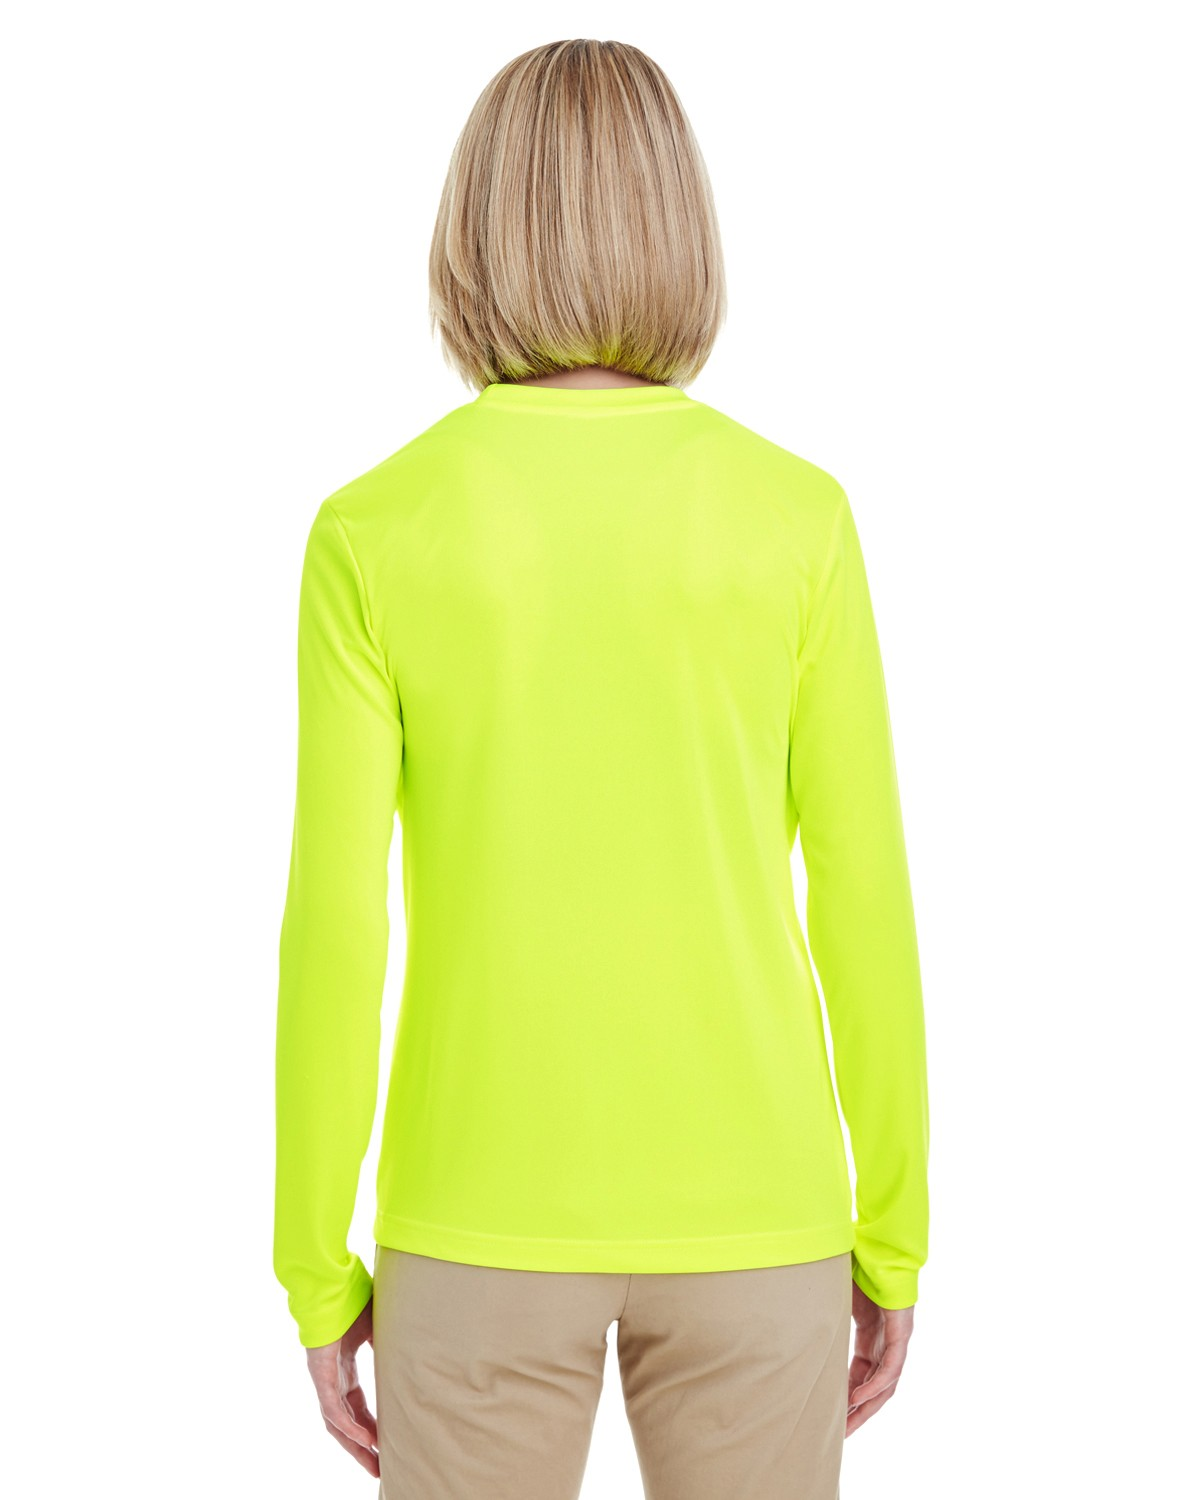 8622W UltraClub BRIGHT YELLOW